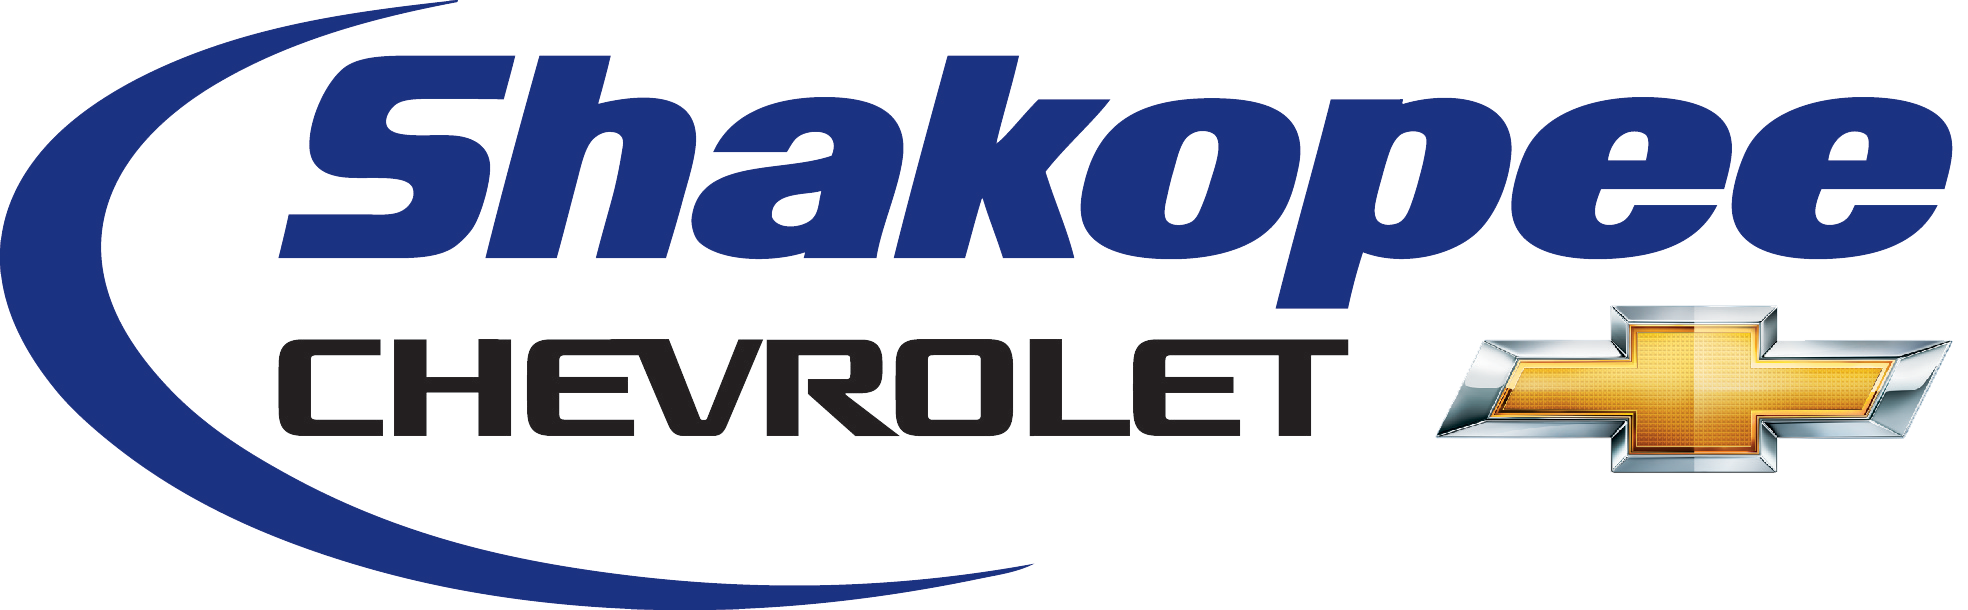 shakopee_chevrolet_logo.png